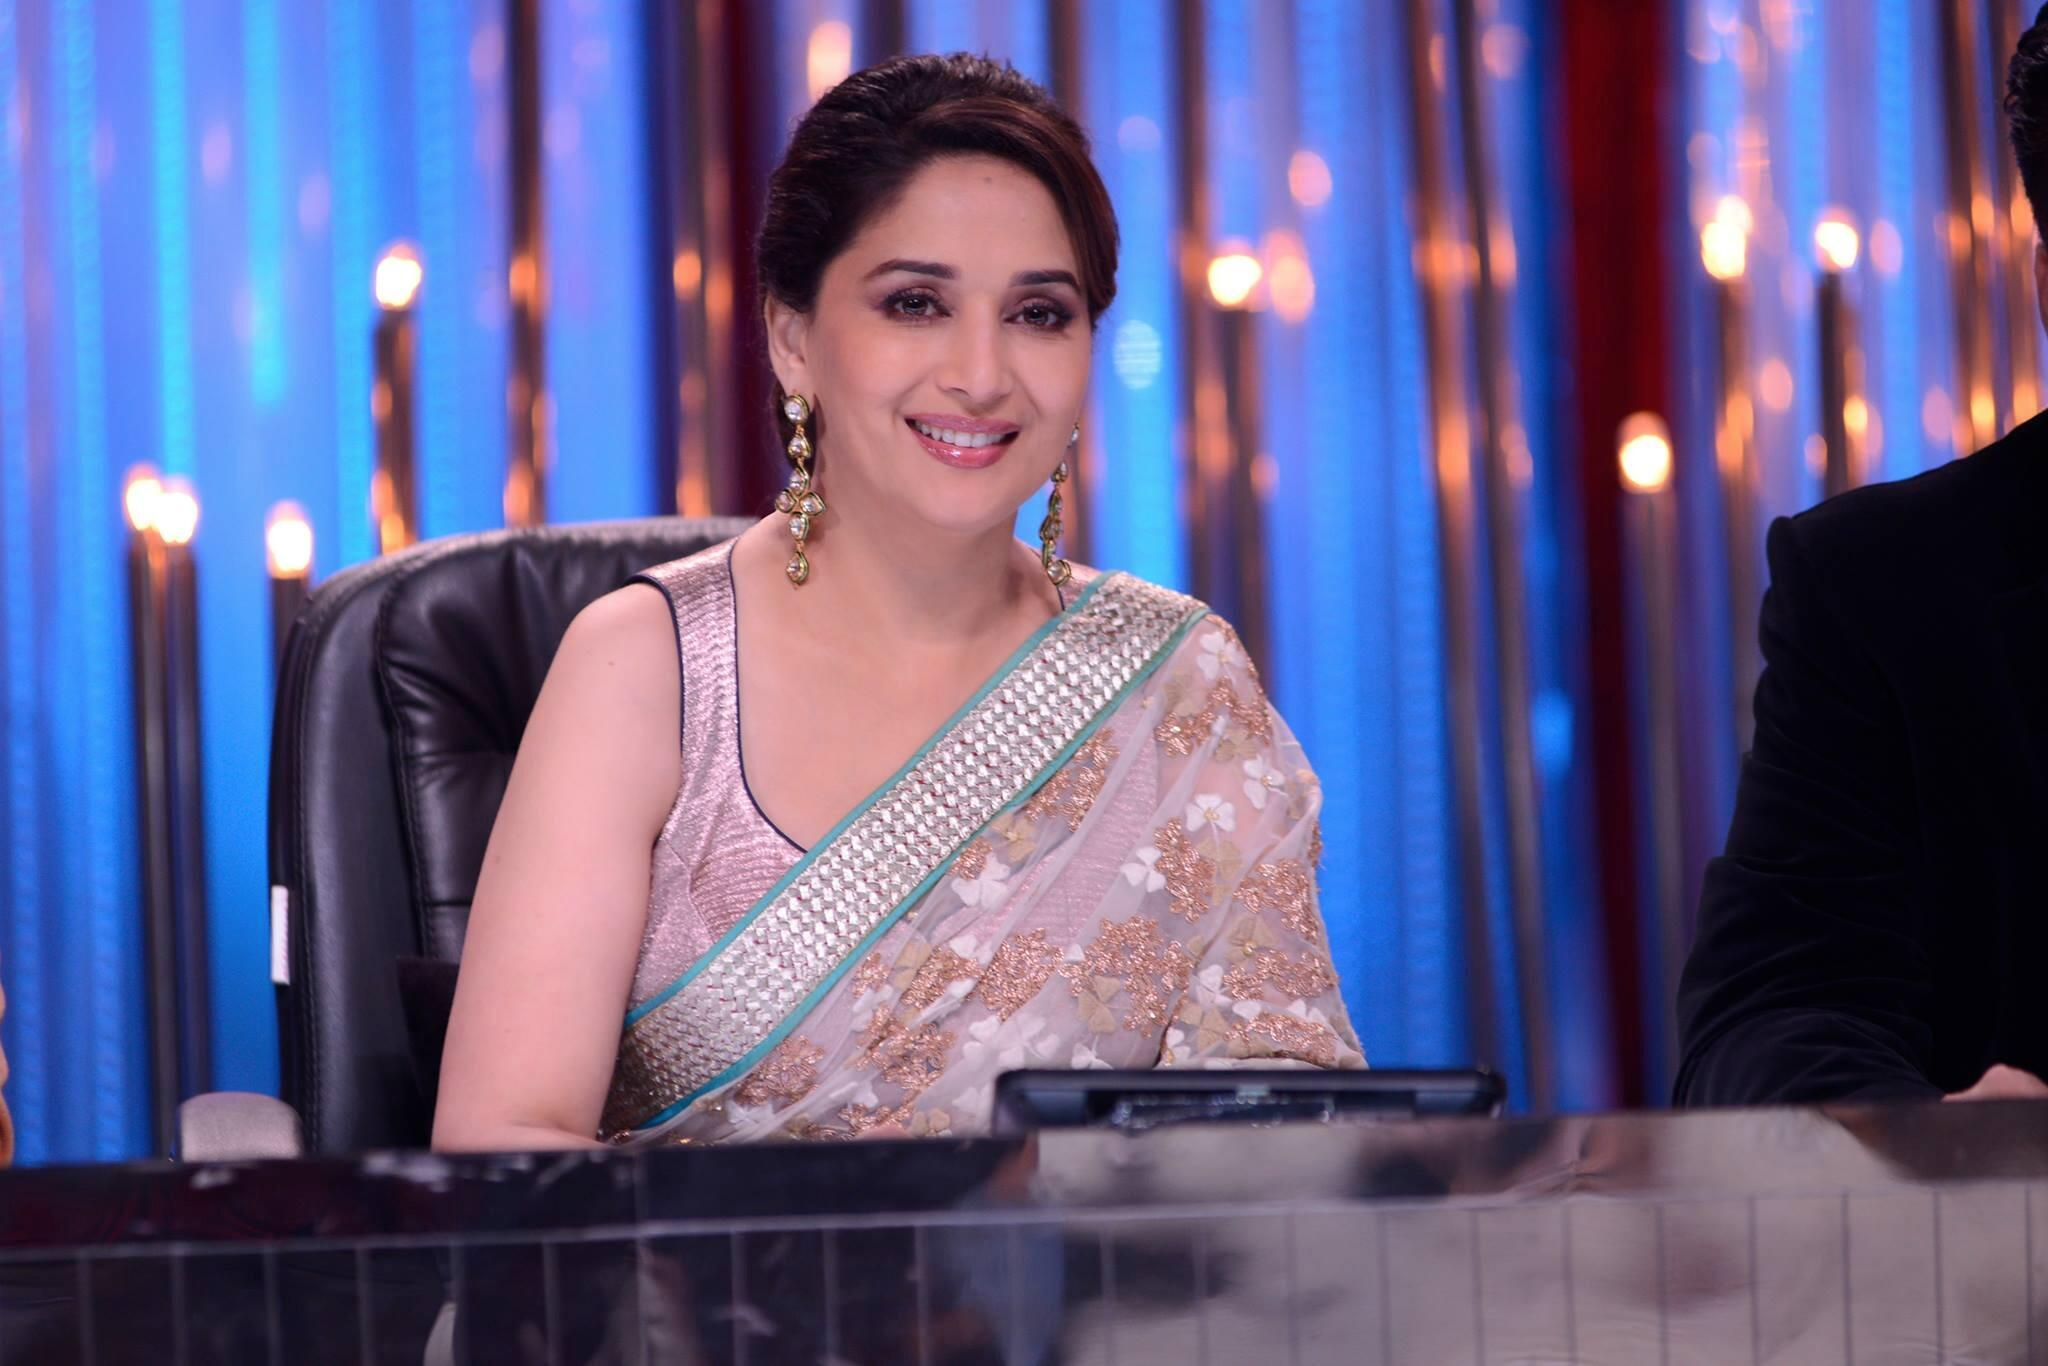 R u getting ready to watch #Jhalak? Should be a power packed evening of performances!!! http://t.co/lb9RZrBUOq